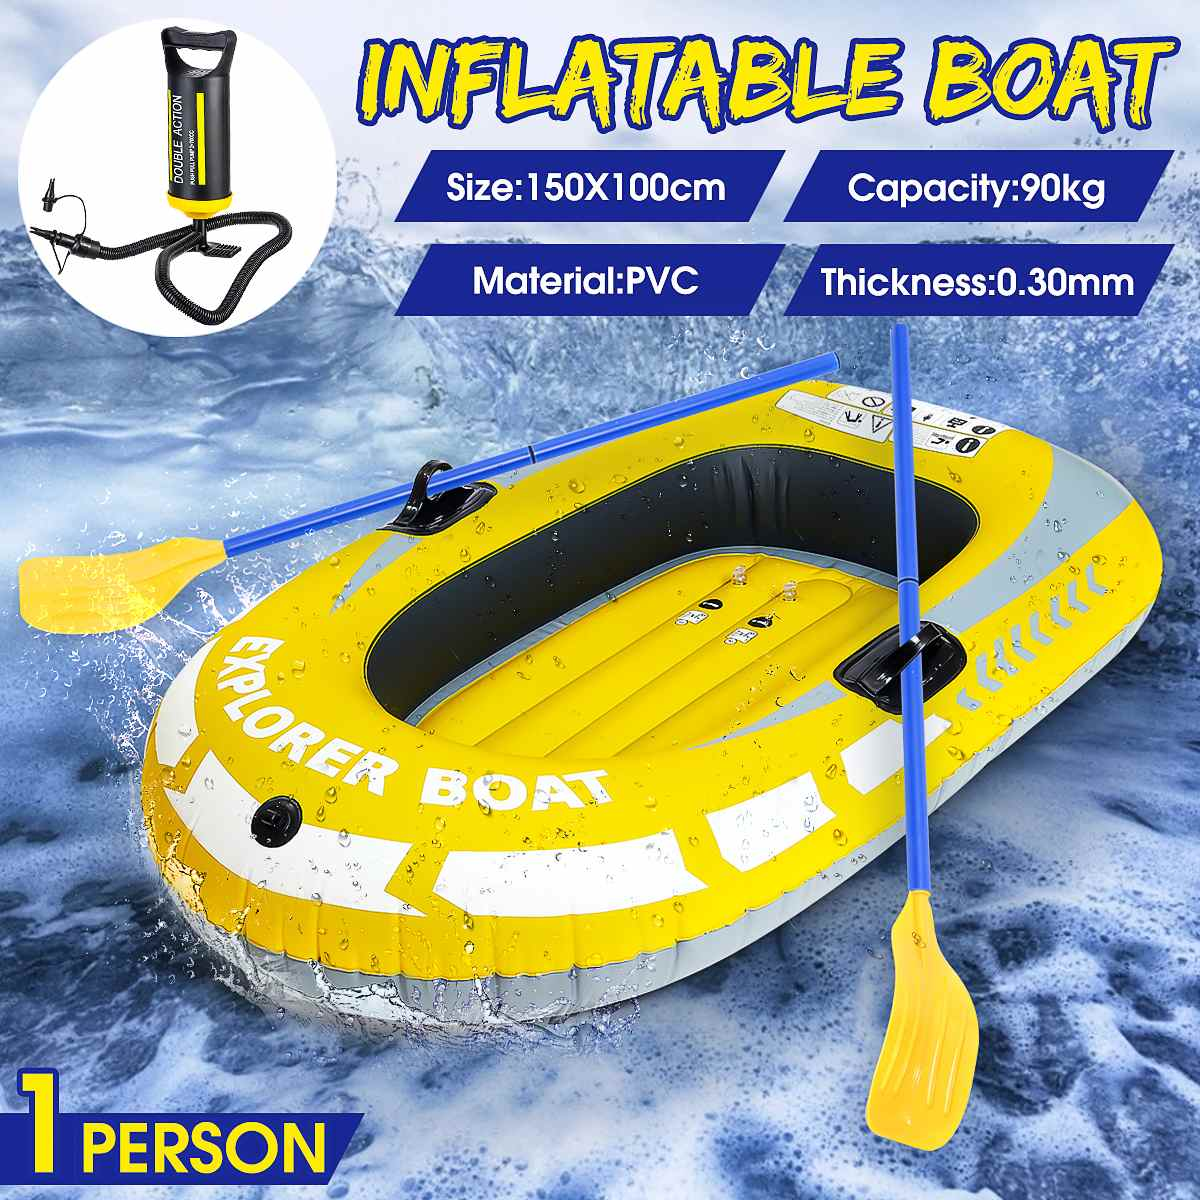 Inflatable Boat Professional Outdoor Sport Tools Canoe 1Person PVC Stream Kayaking Rubber Boat Convenient Boating Fishing